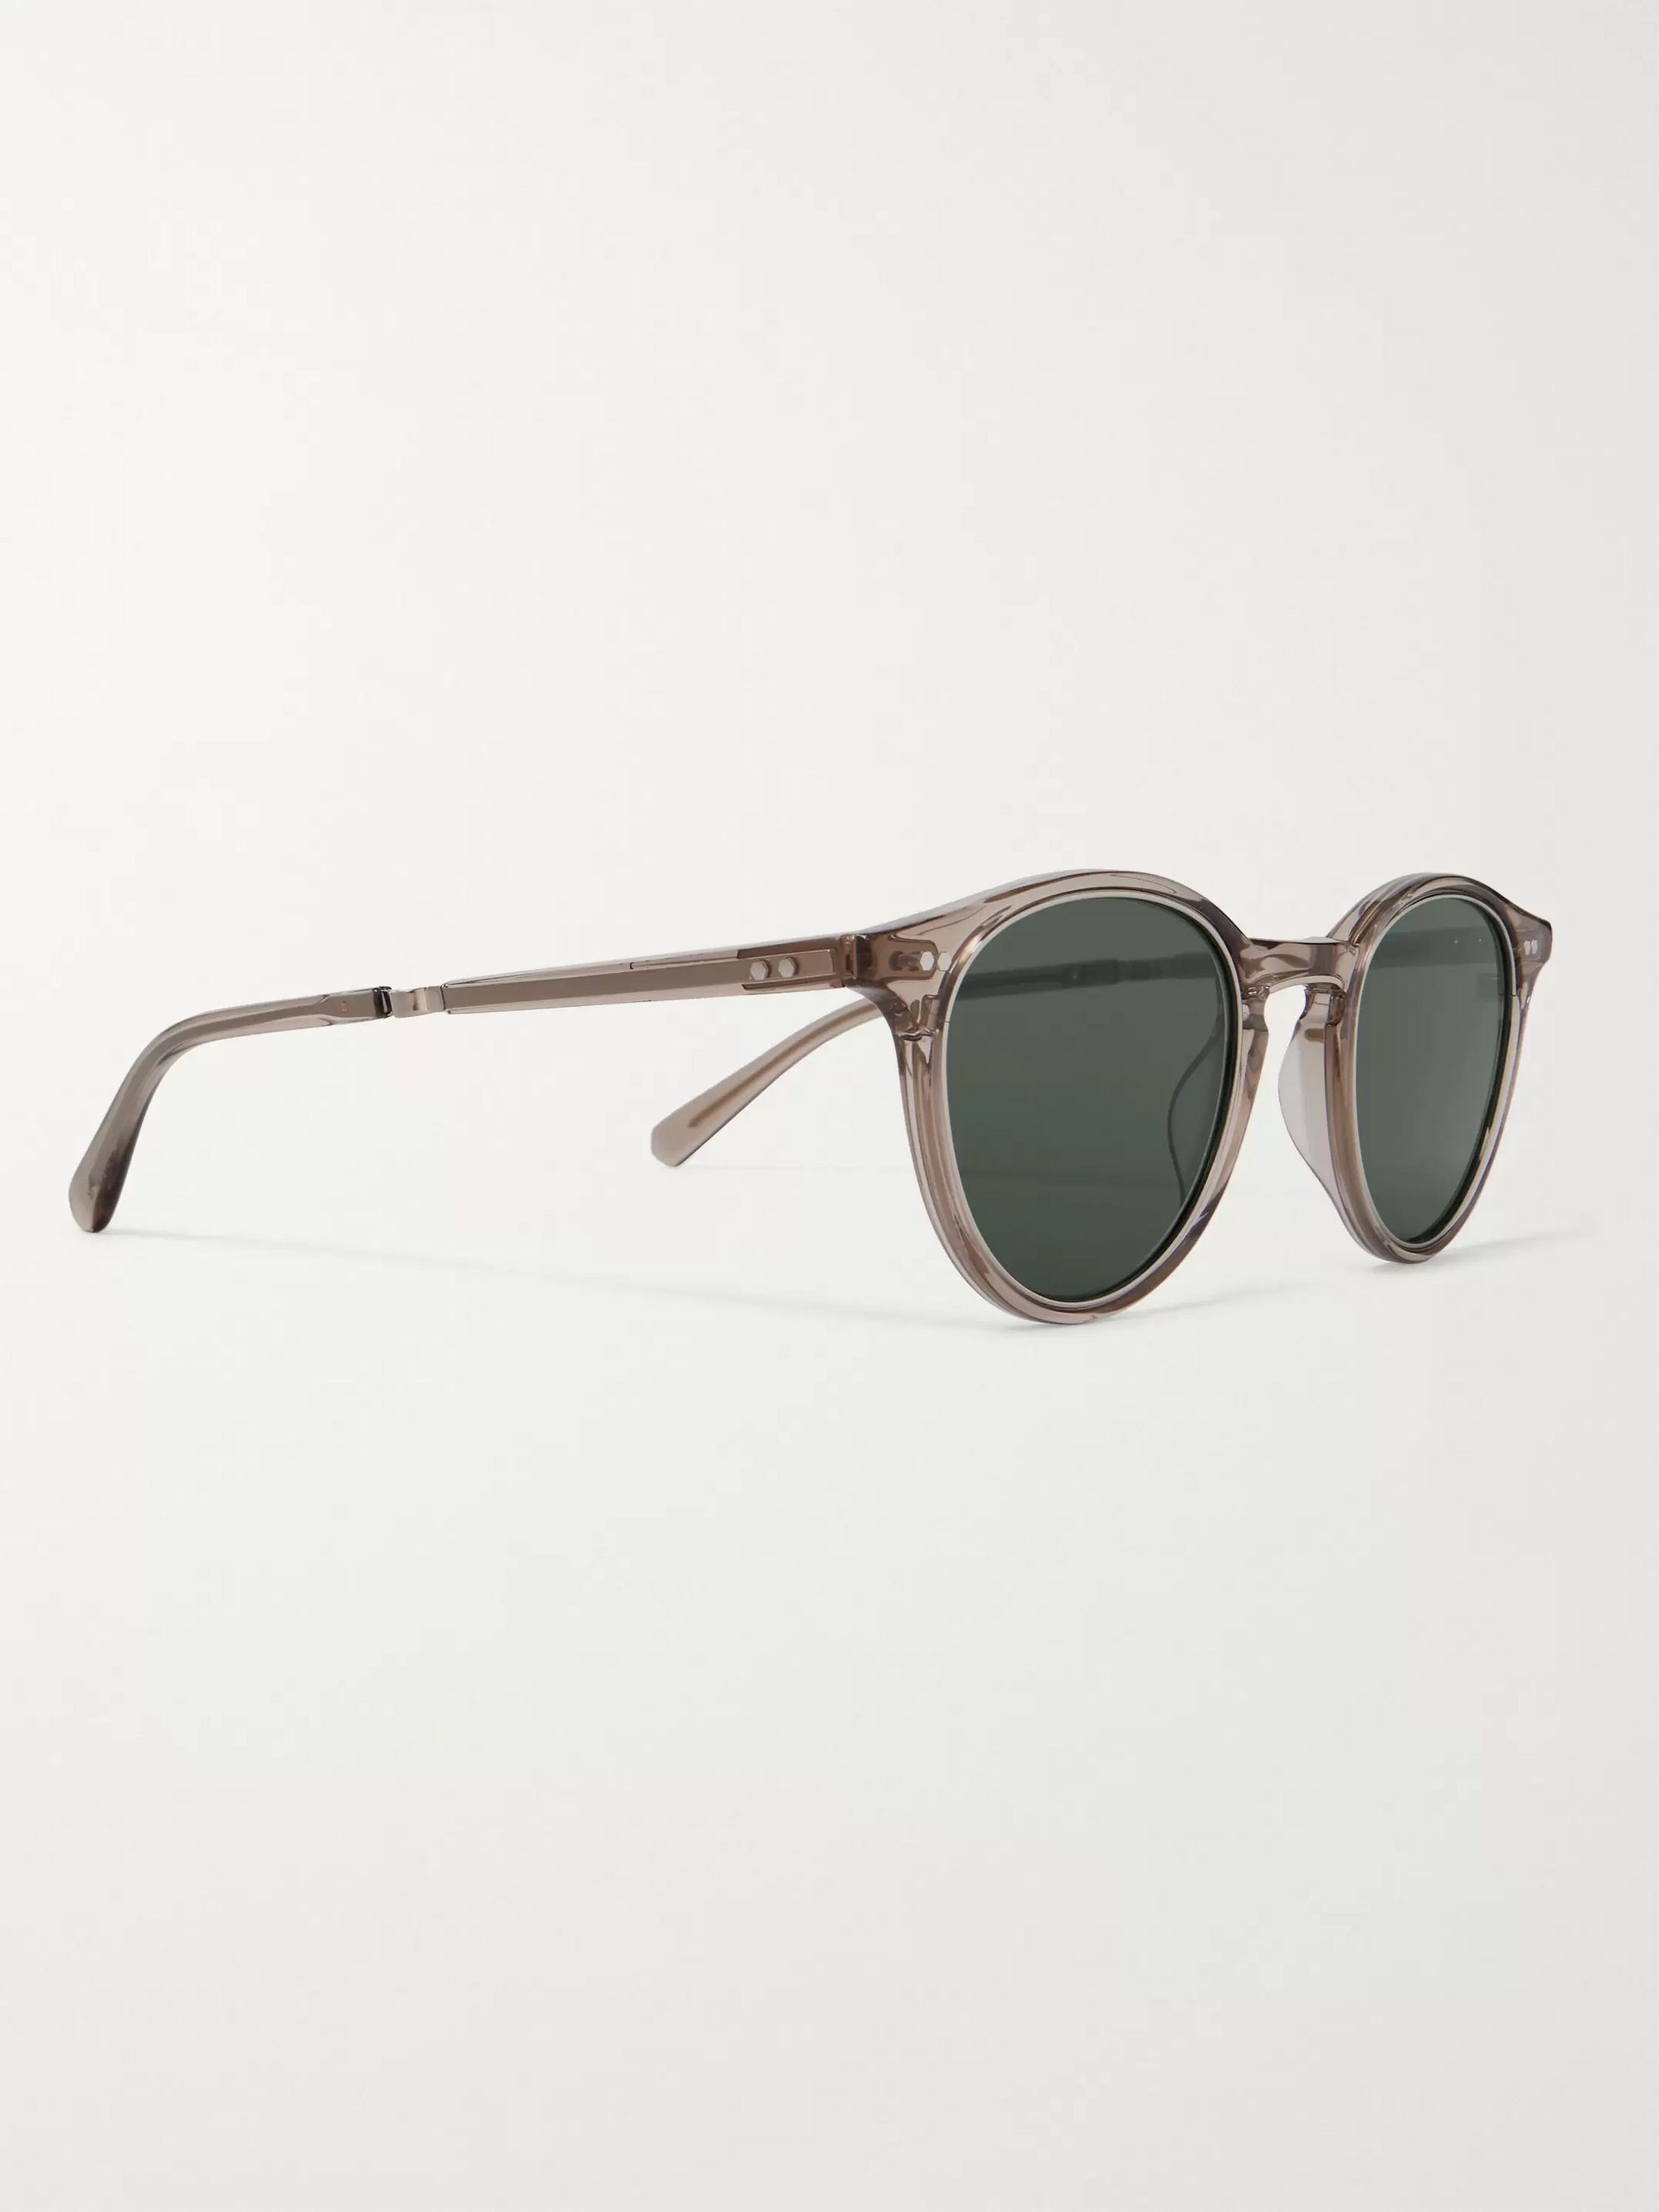 Mr Leight Marmont S Round-Frame White Gold-Plated and Acetate Glasses